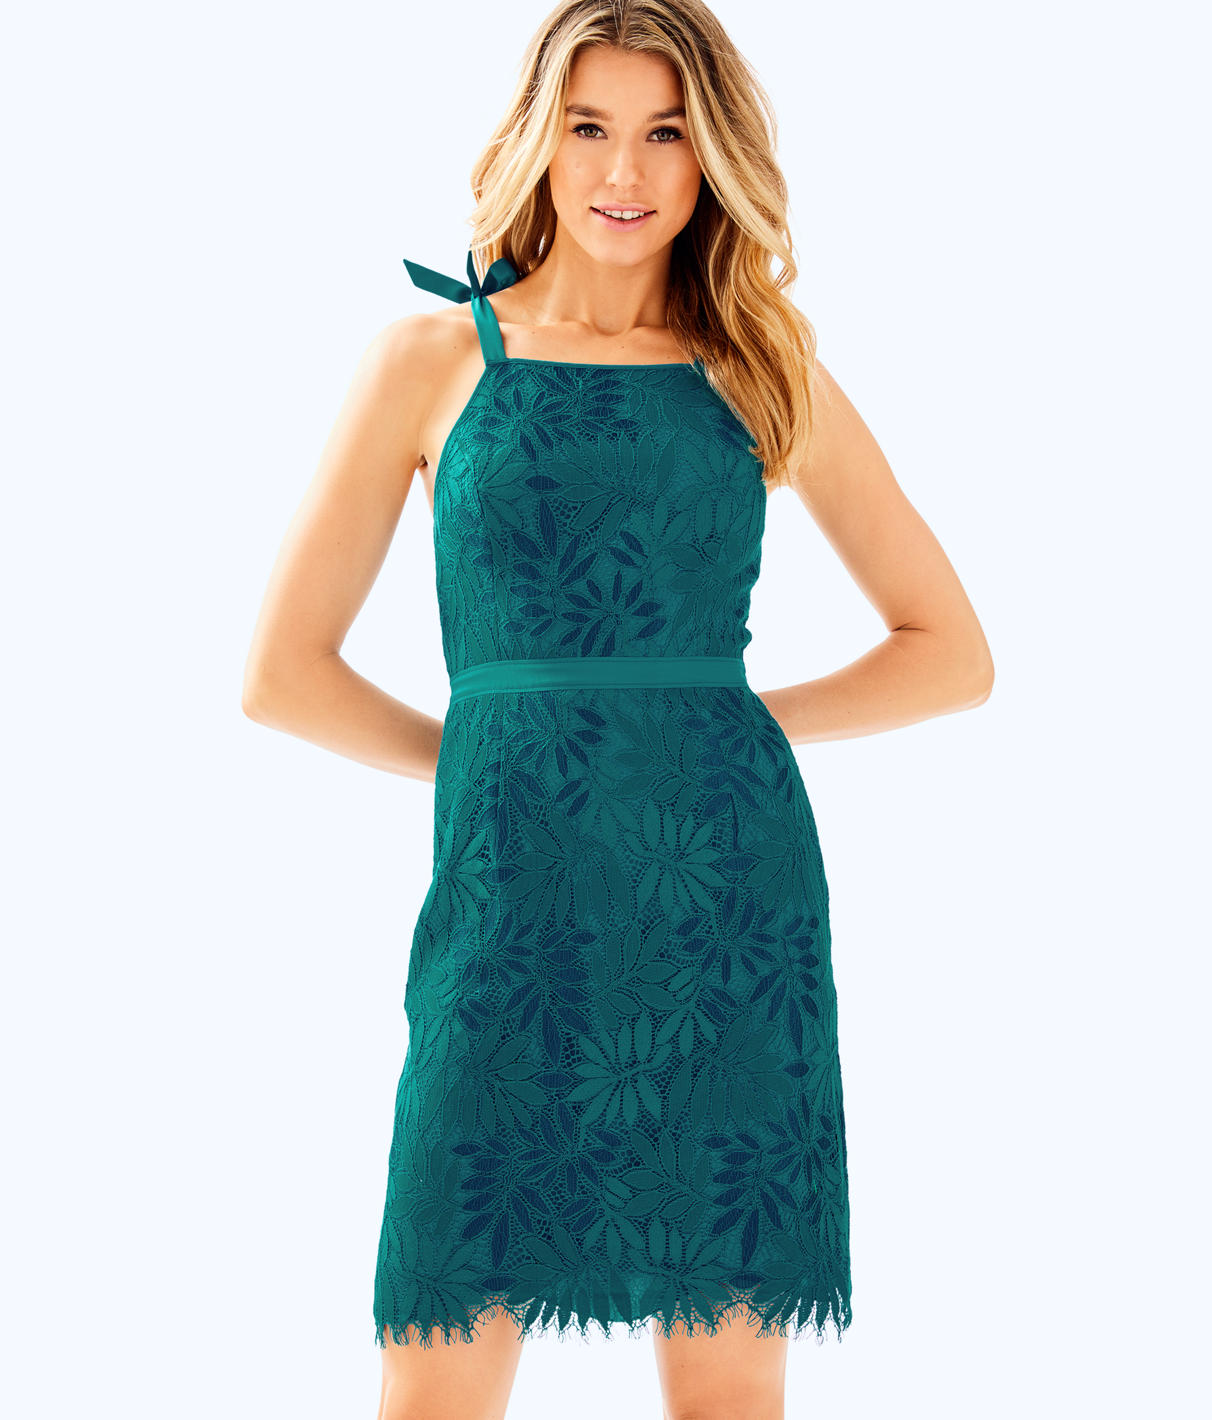 Kayleigh Lace Sheath Dress in True Navy Fern Gallery Lace from Lilly Pulitzer